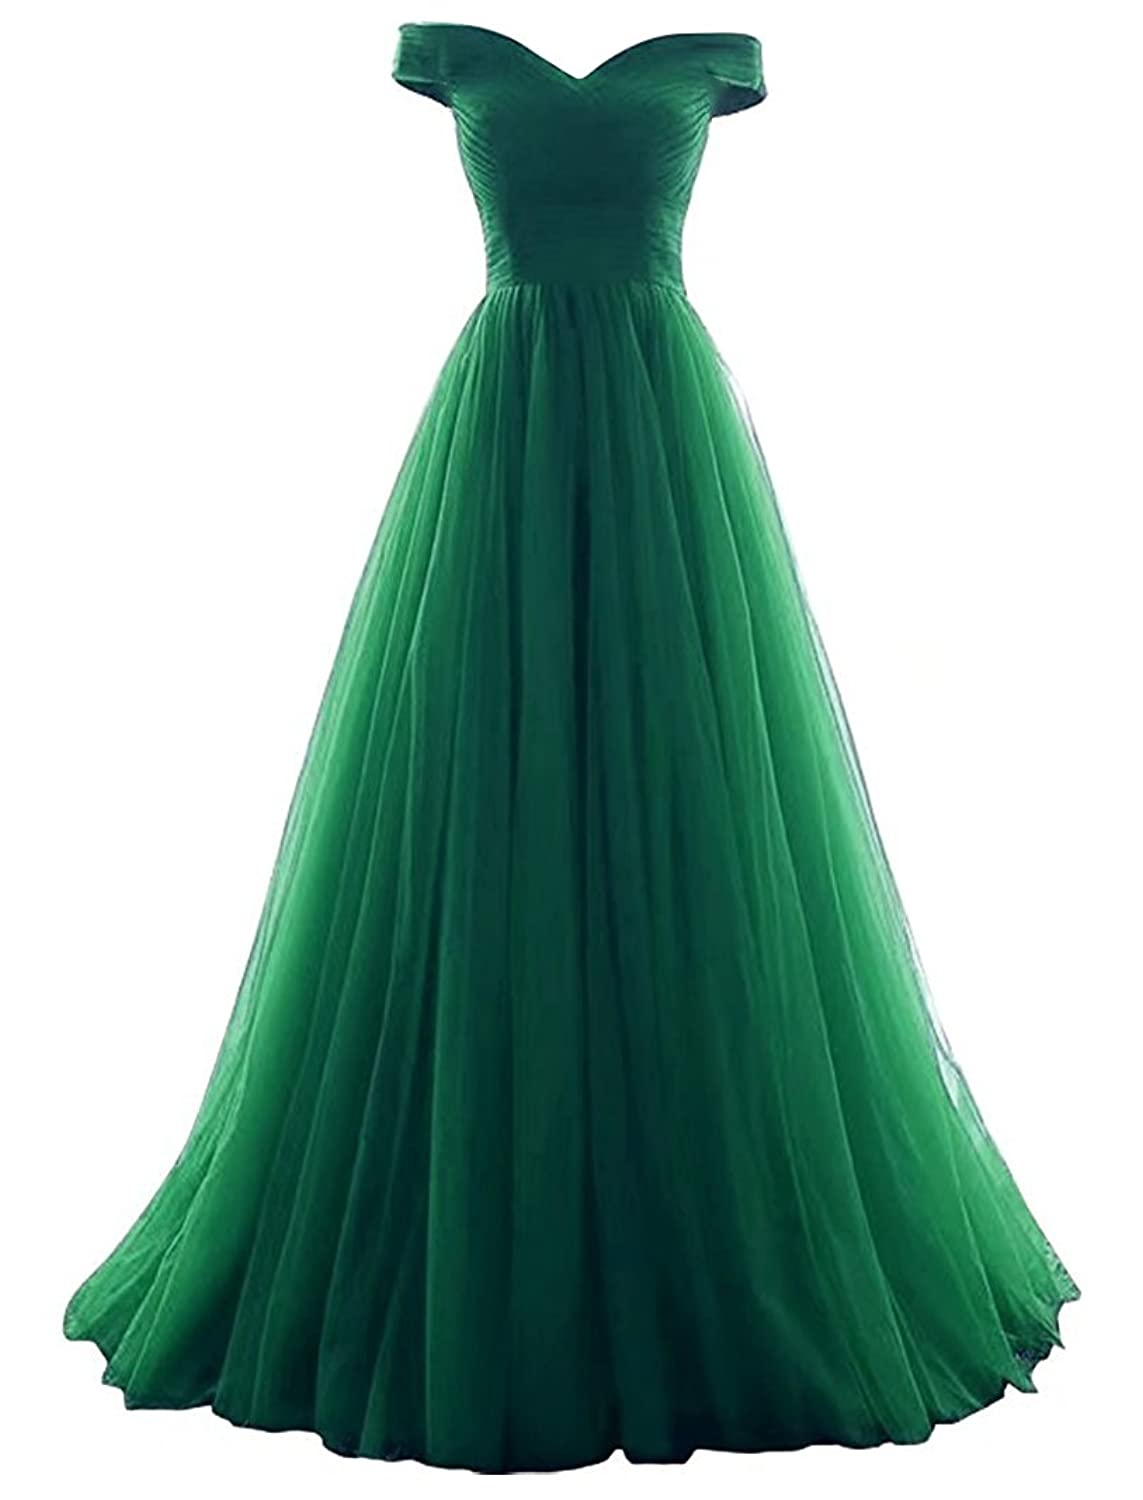 VICKYBEN VKBRIDAL Women's A-Line Tulle Prom Formal Evening Homecoming Dress Ball Gown